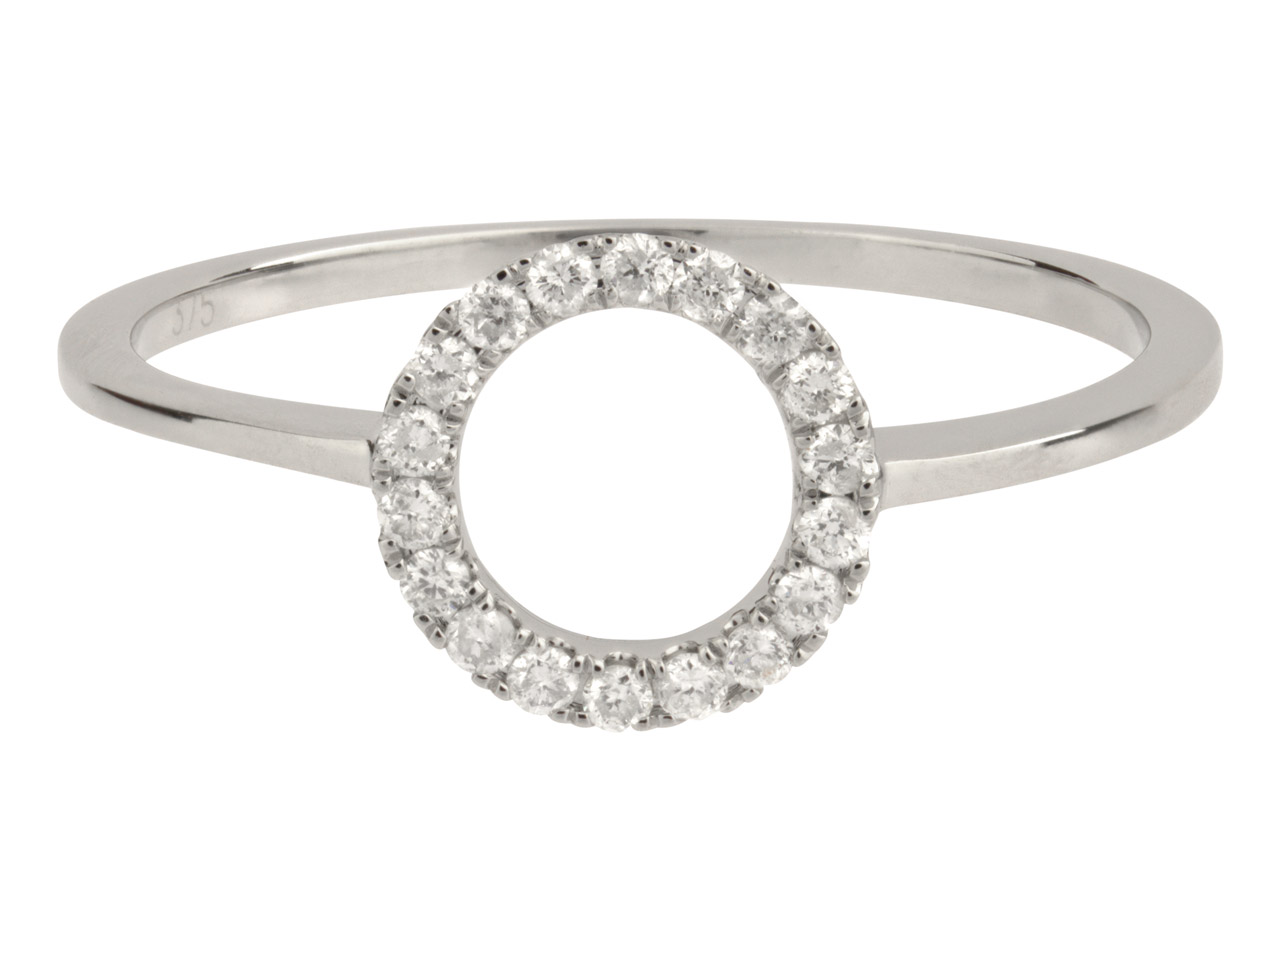 9ct White Circle Outline Ring,     0.14cts, Hallmarked Diamond Set,   Finger Size P